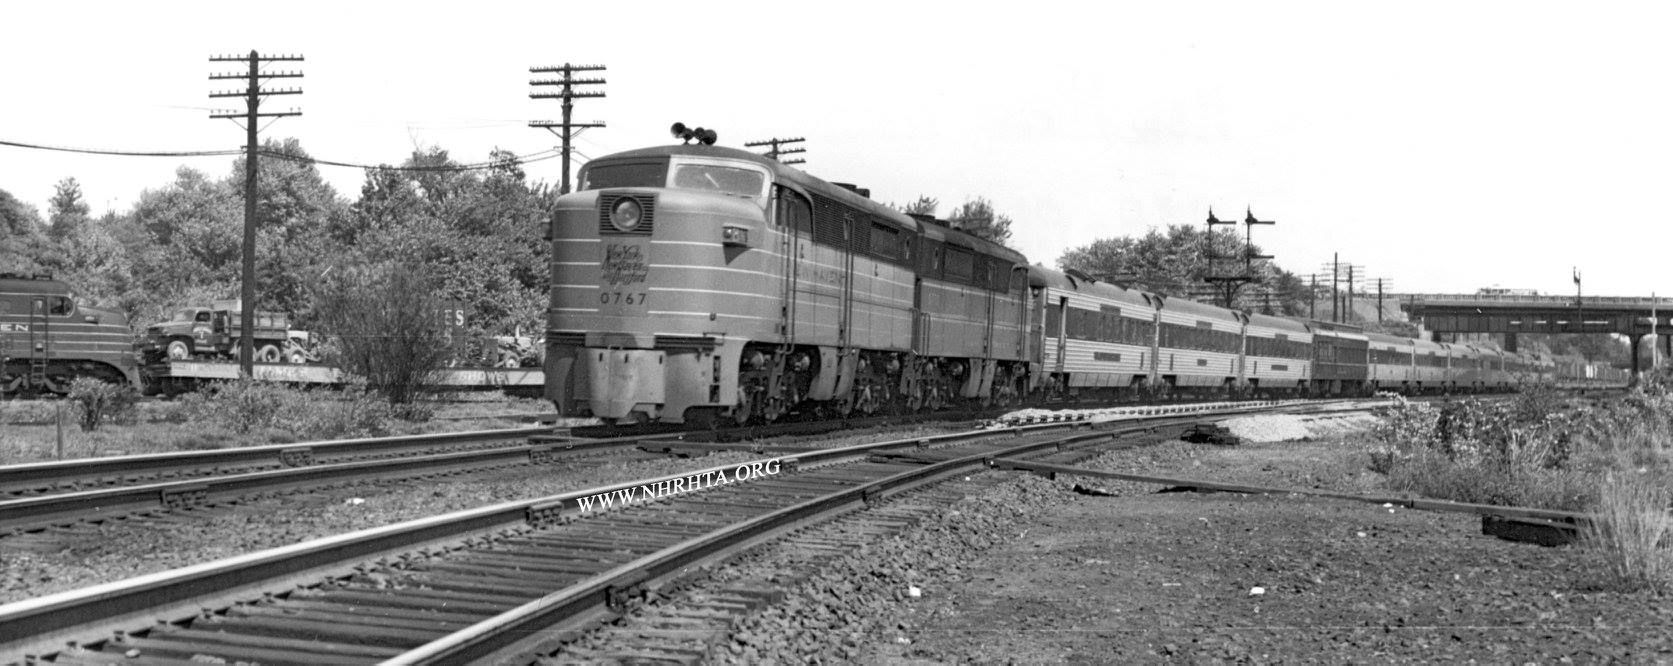 New haven pa1 0767 a class der3a and built by alco